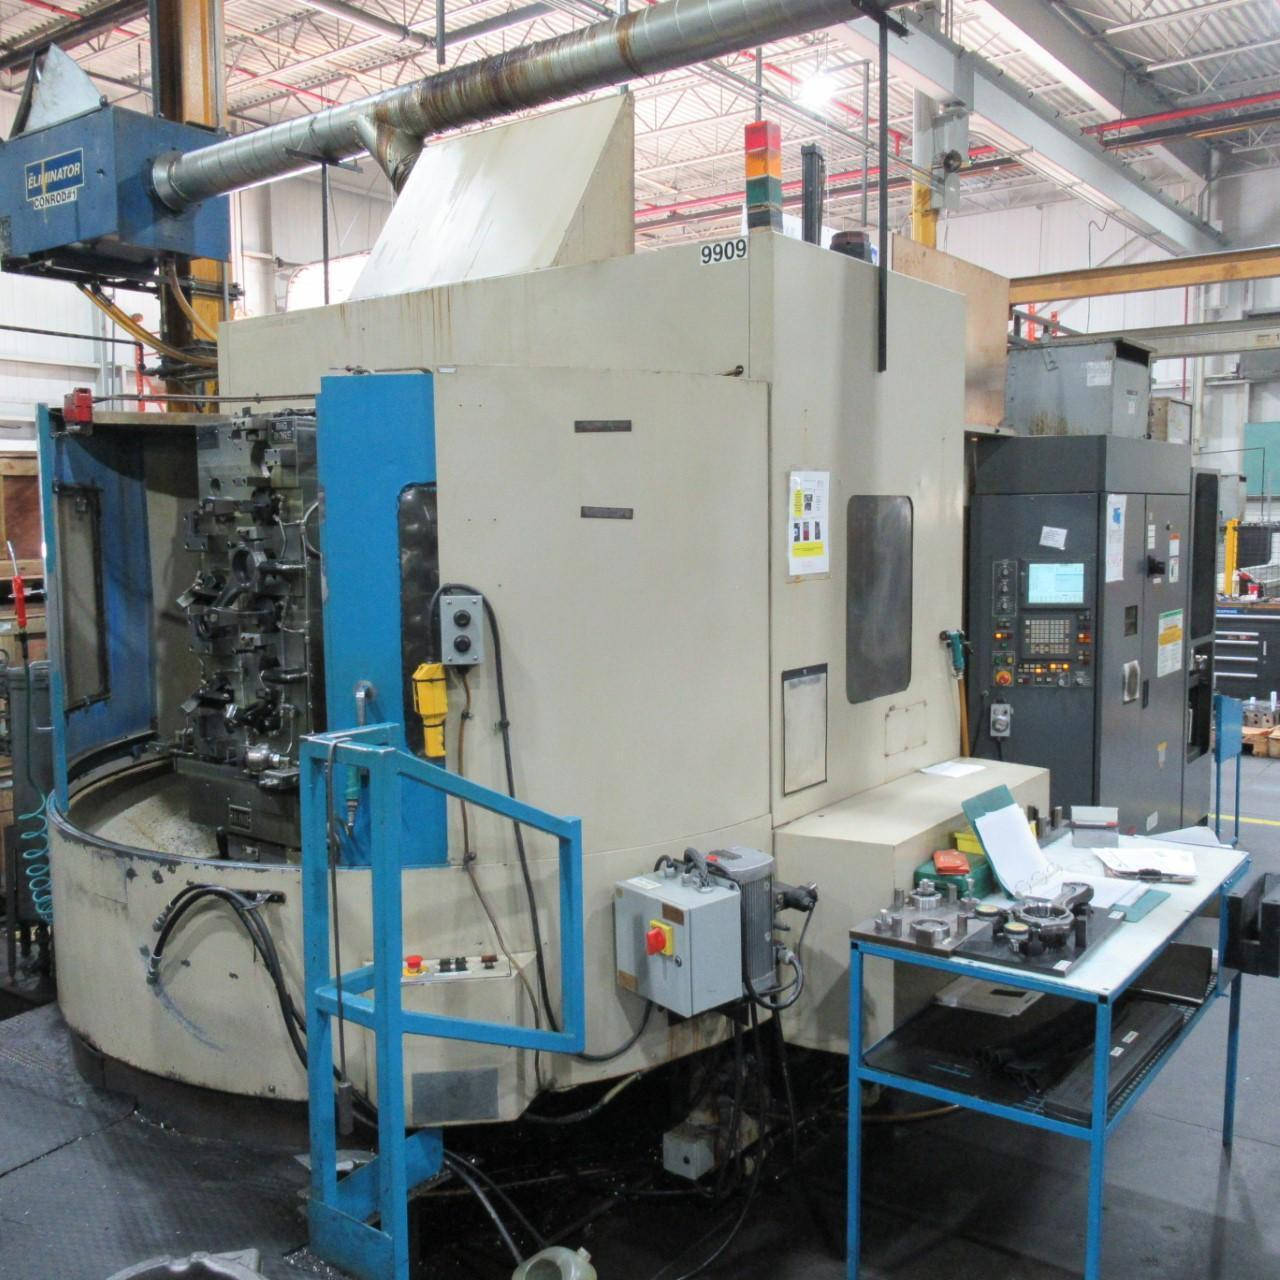 TOYODA FA-630 HORIZONTAL MACHINING CENTER, HIGH PRESSURE THROUGH SPINDLE COOLANT, YEAR 2003 (9911)